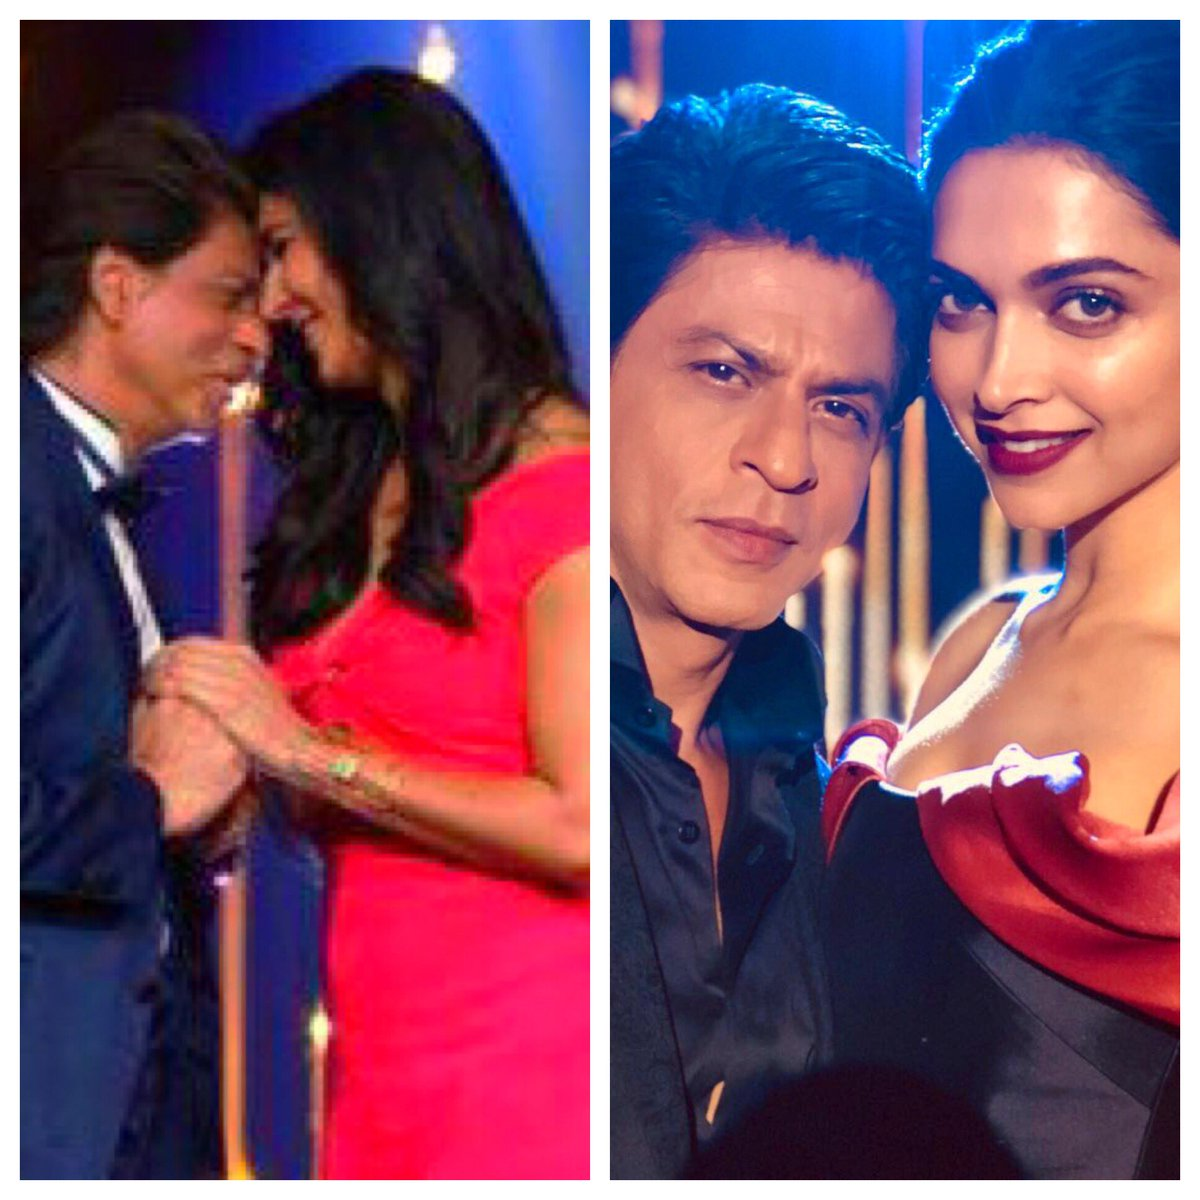 Hard day at work…waltzing with the lovely Katrina & a hug from beautiful Deepika. And they say actors have it easy !!!